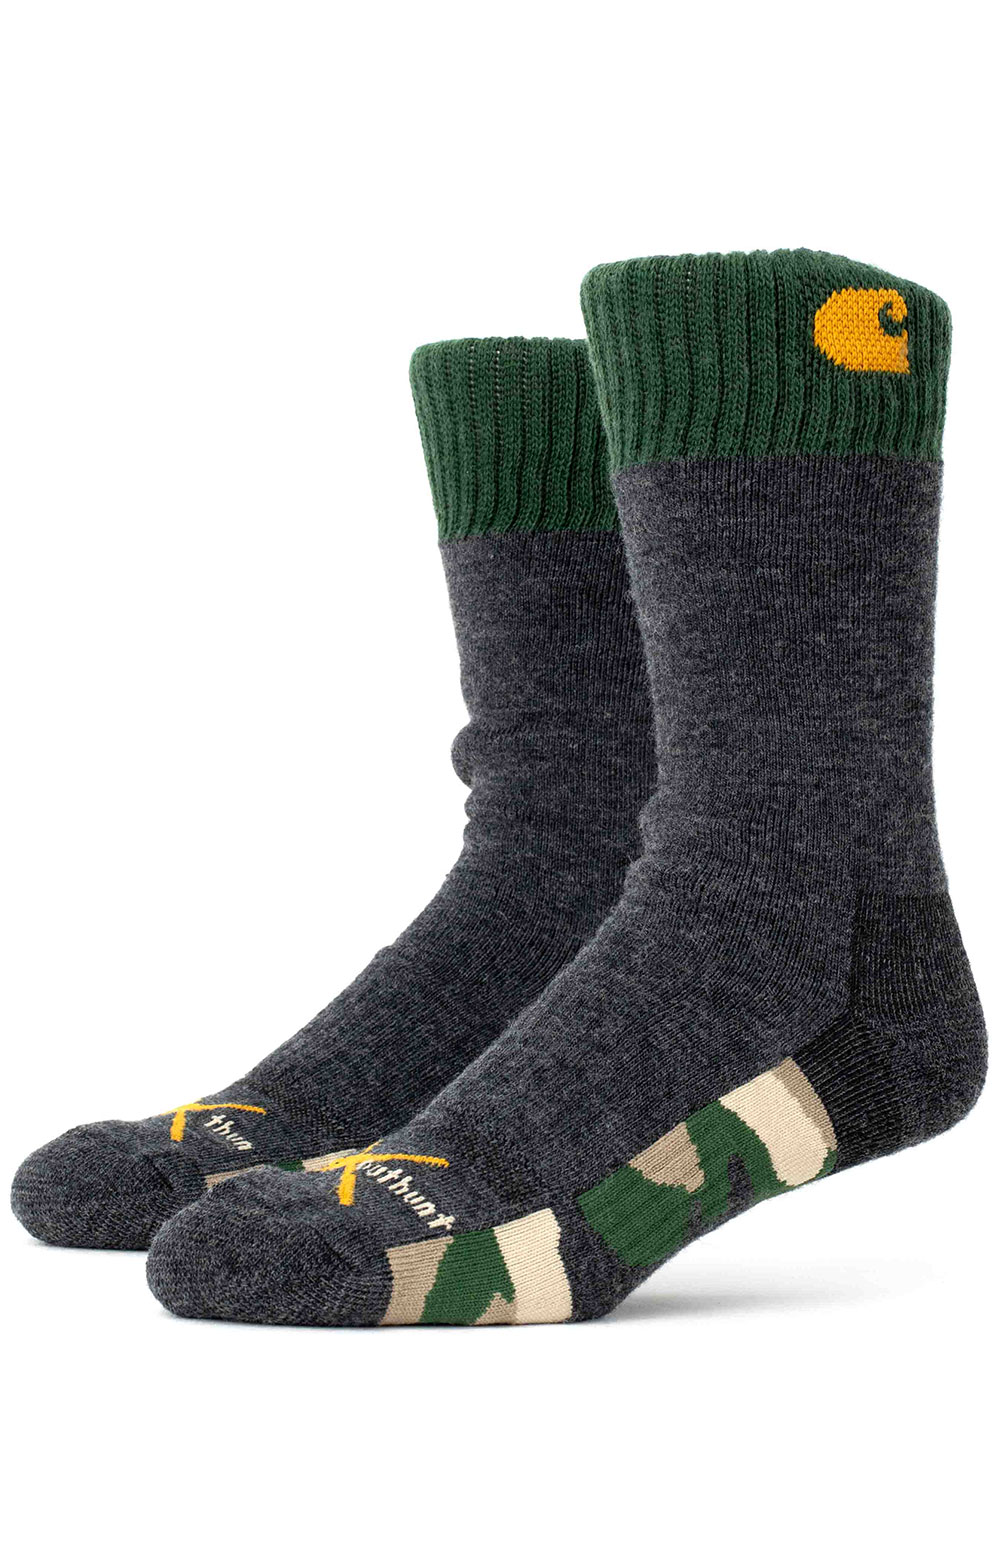 Outwork X Outhunt Crew Sock - Green